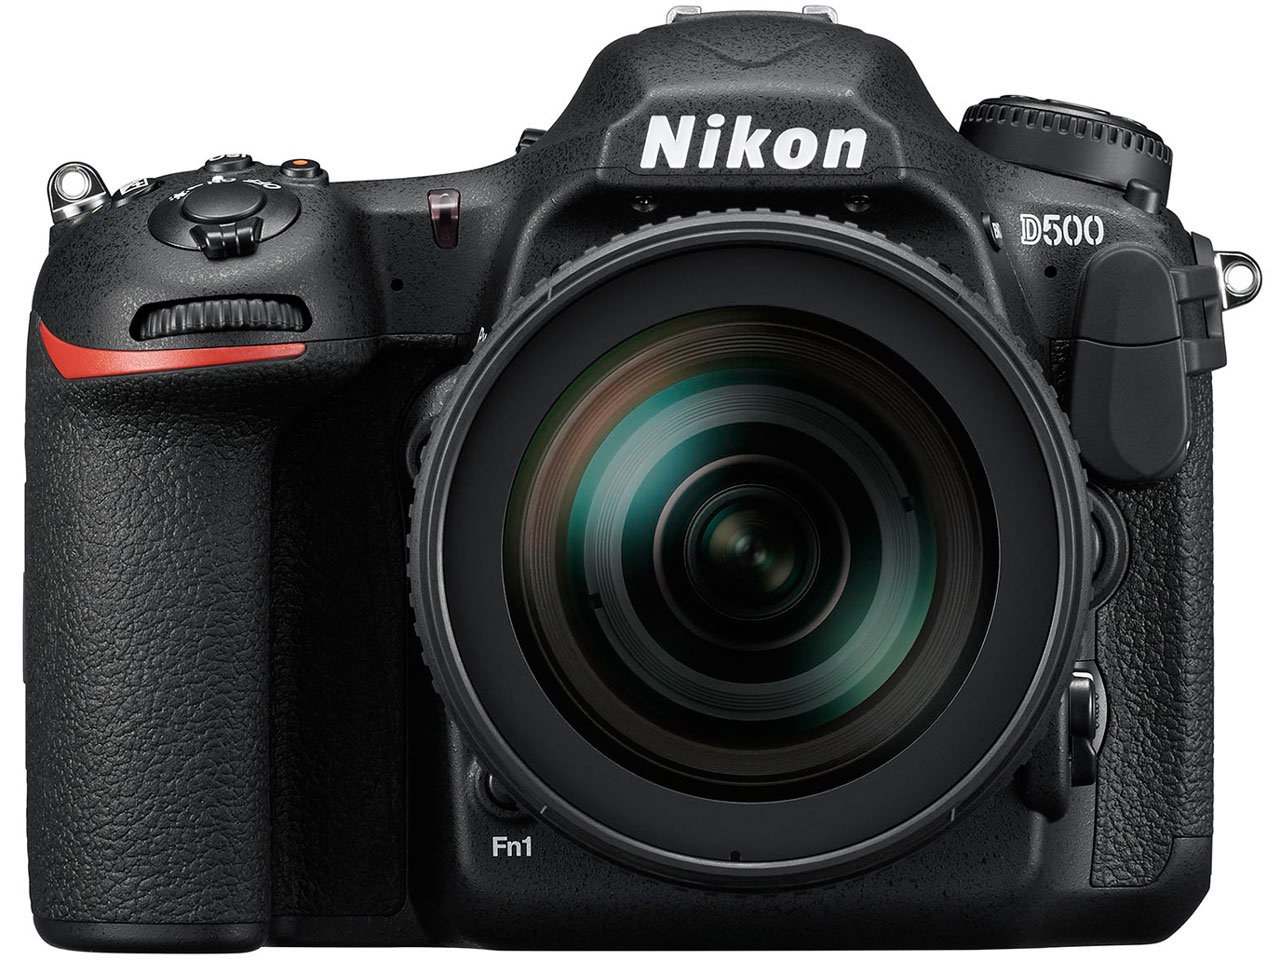 D500 16-80 VR レンズキット【お取り寄せ商品(3週間~4週間程度での入荷、発送)】